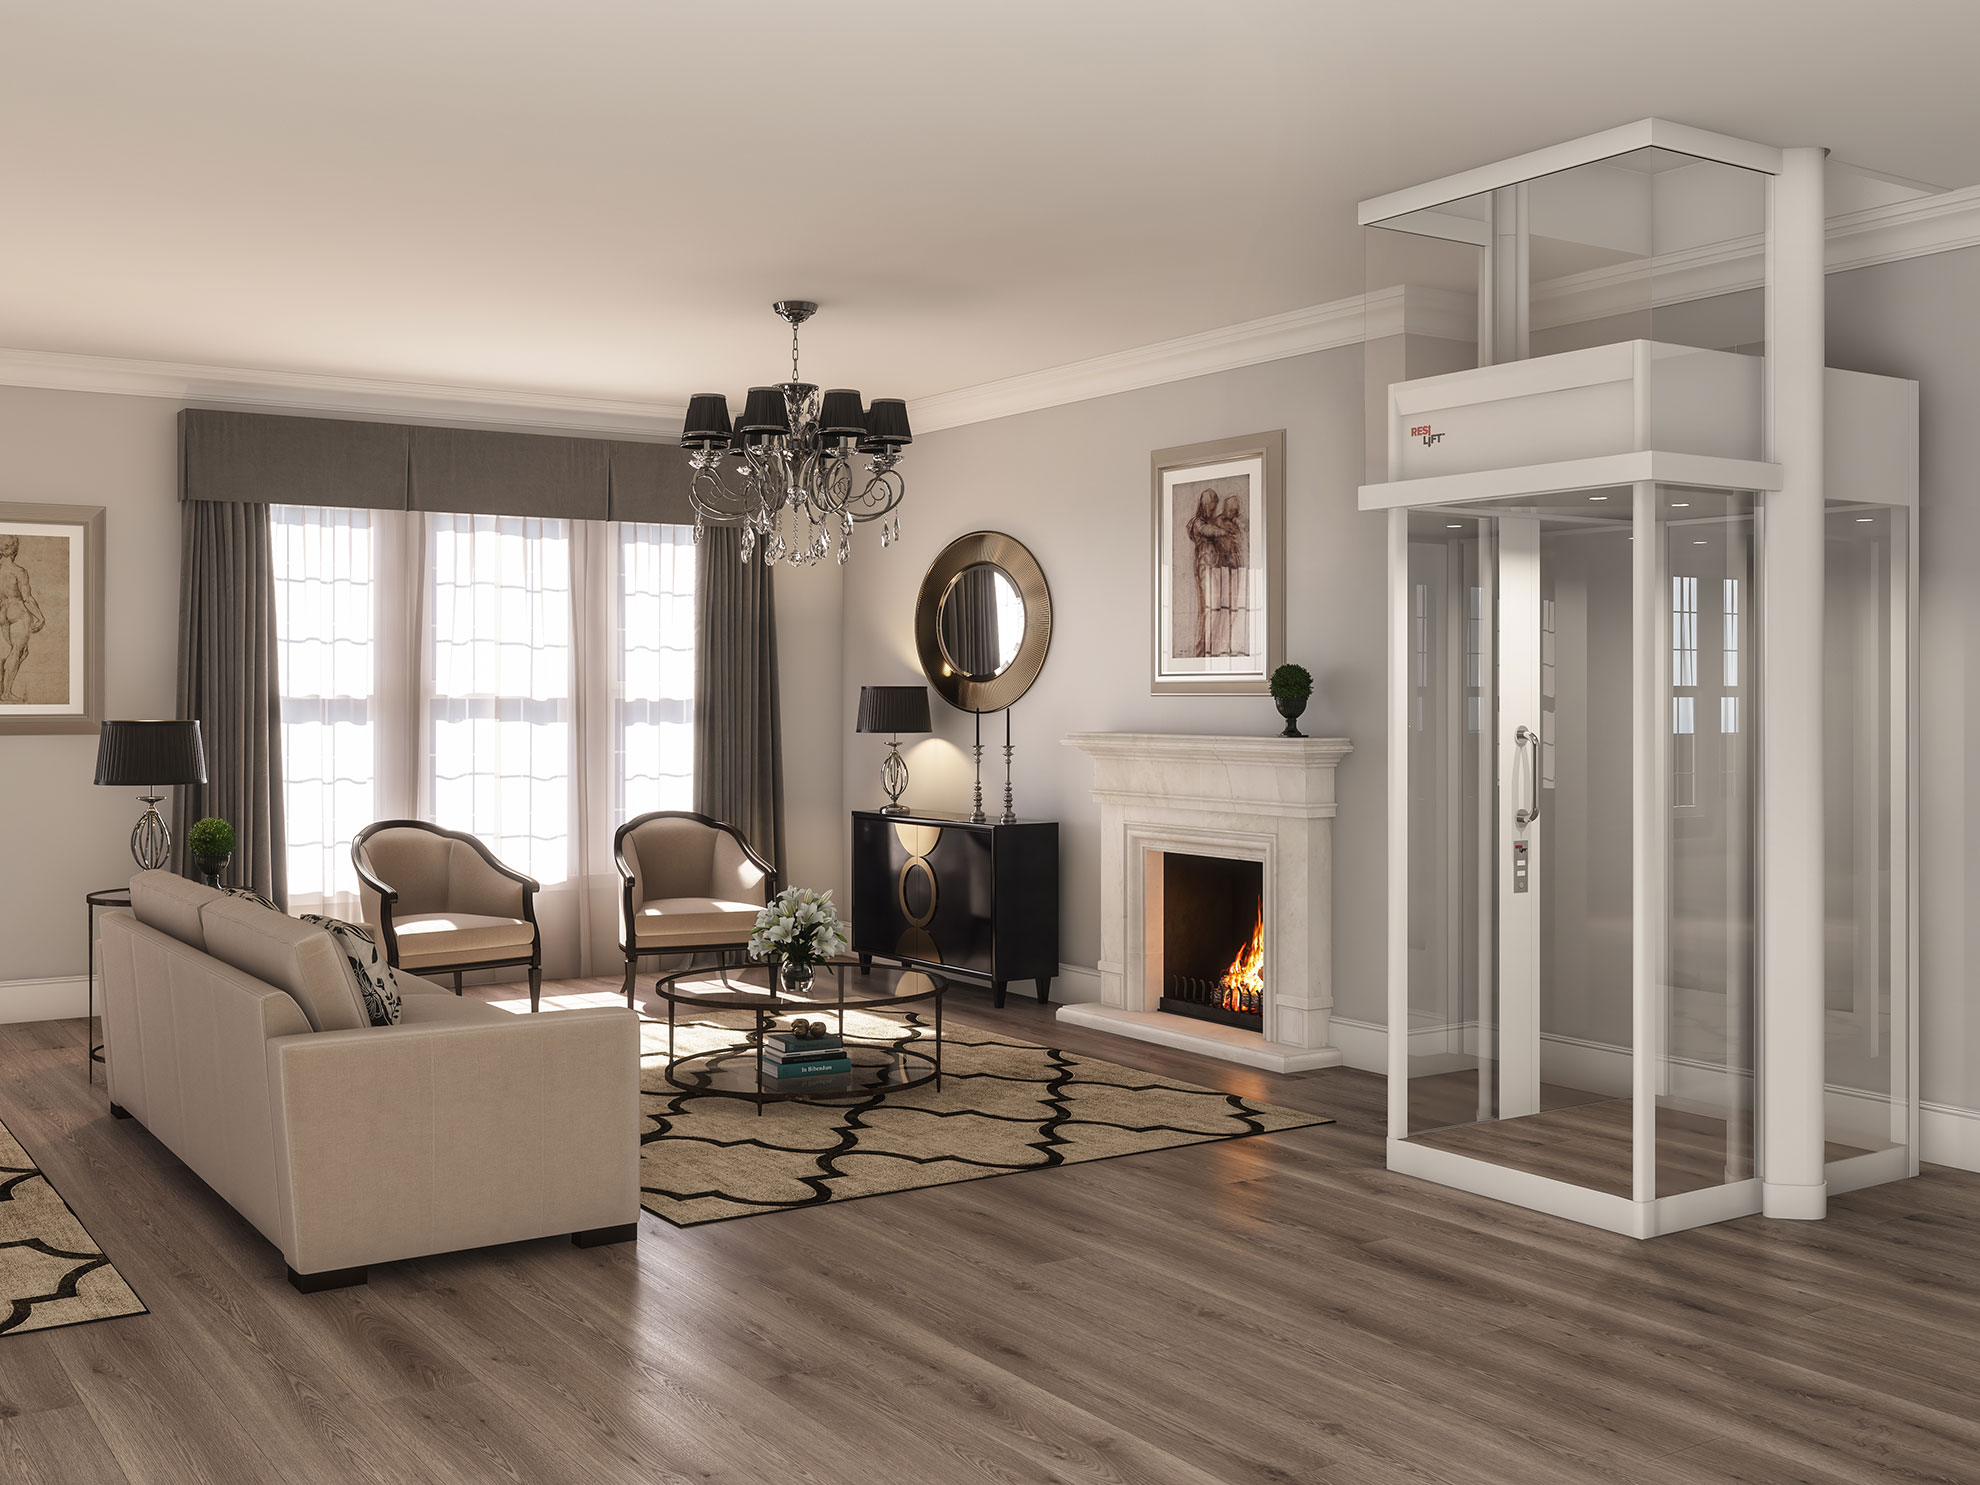 Miracle Resilift fireplace residential lift